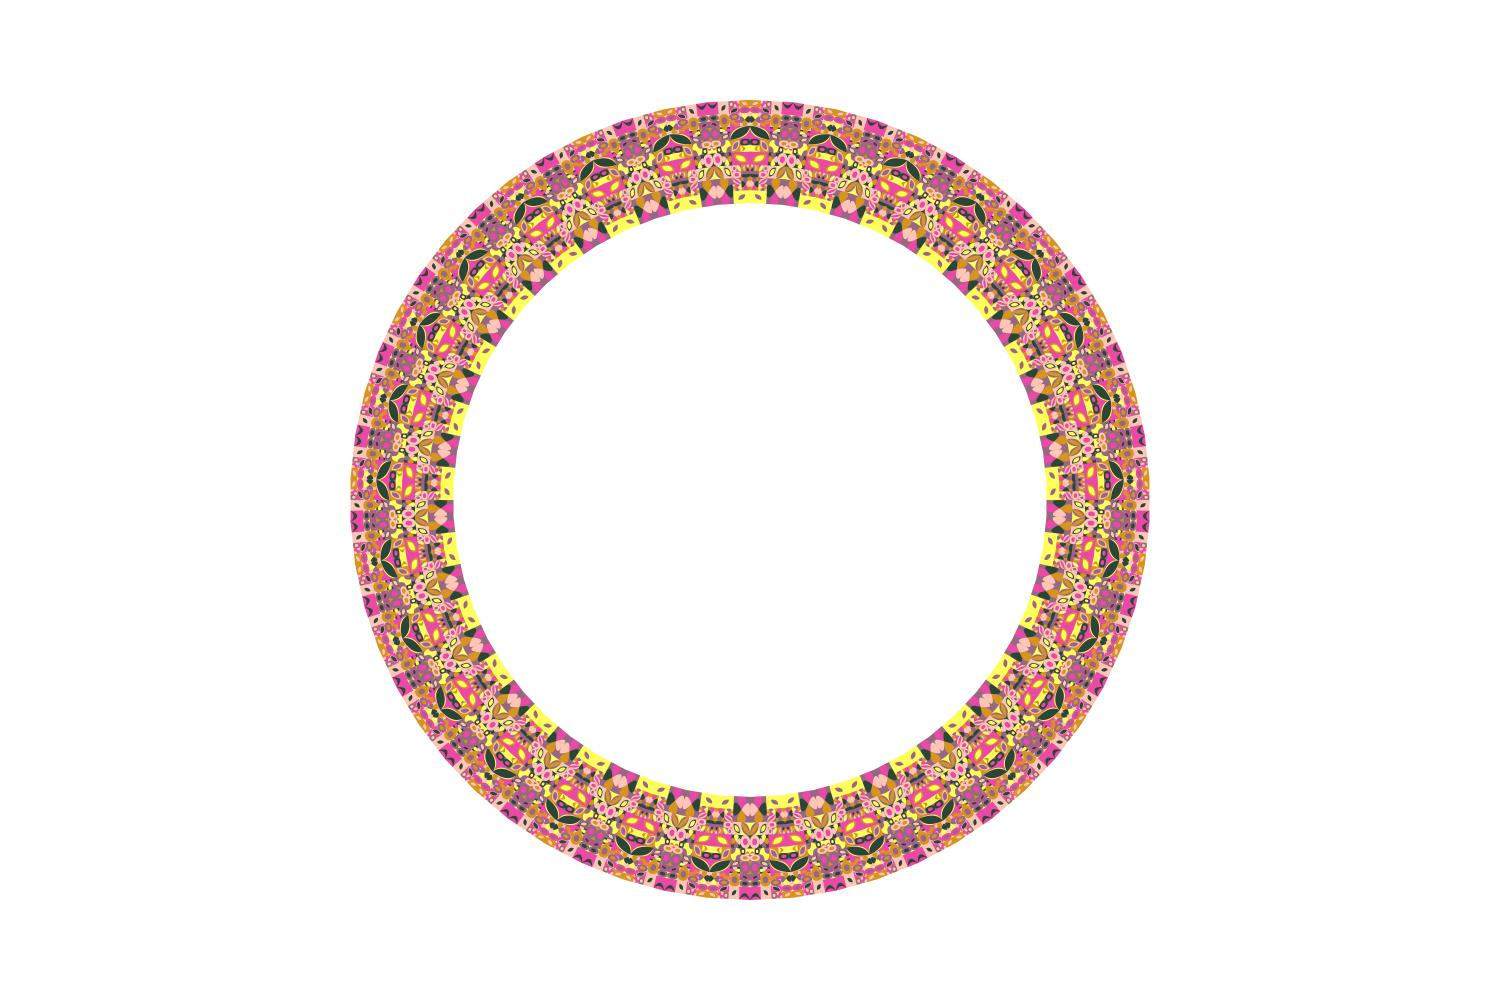 Download Free Geometrical Mosaic Wreath Graphic By Davidzydd Creative Fabrica for Cricut Explore, Silhouette and other cutting machines.